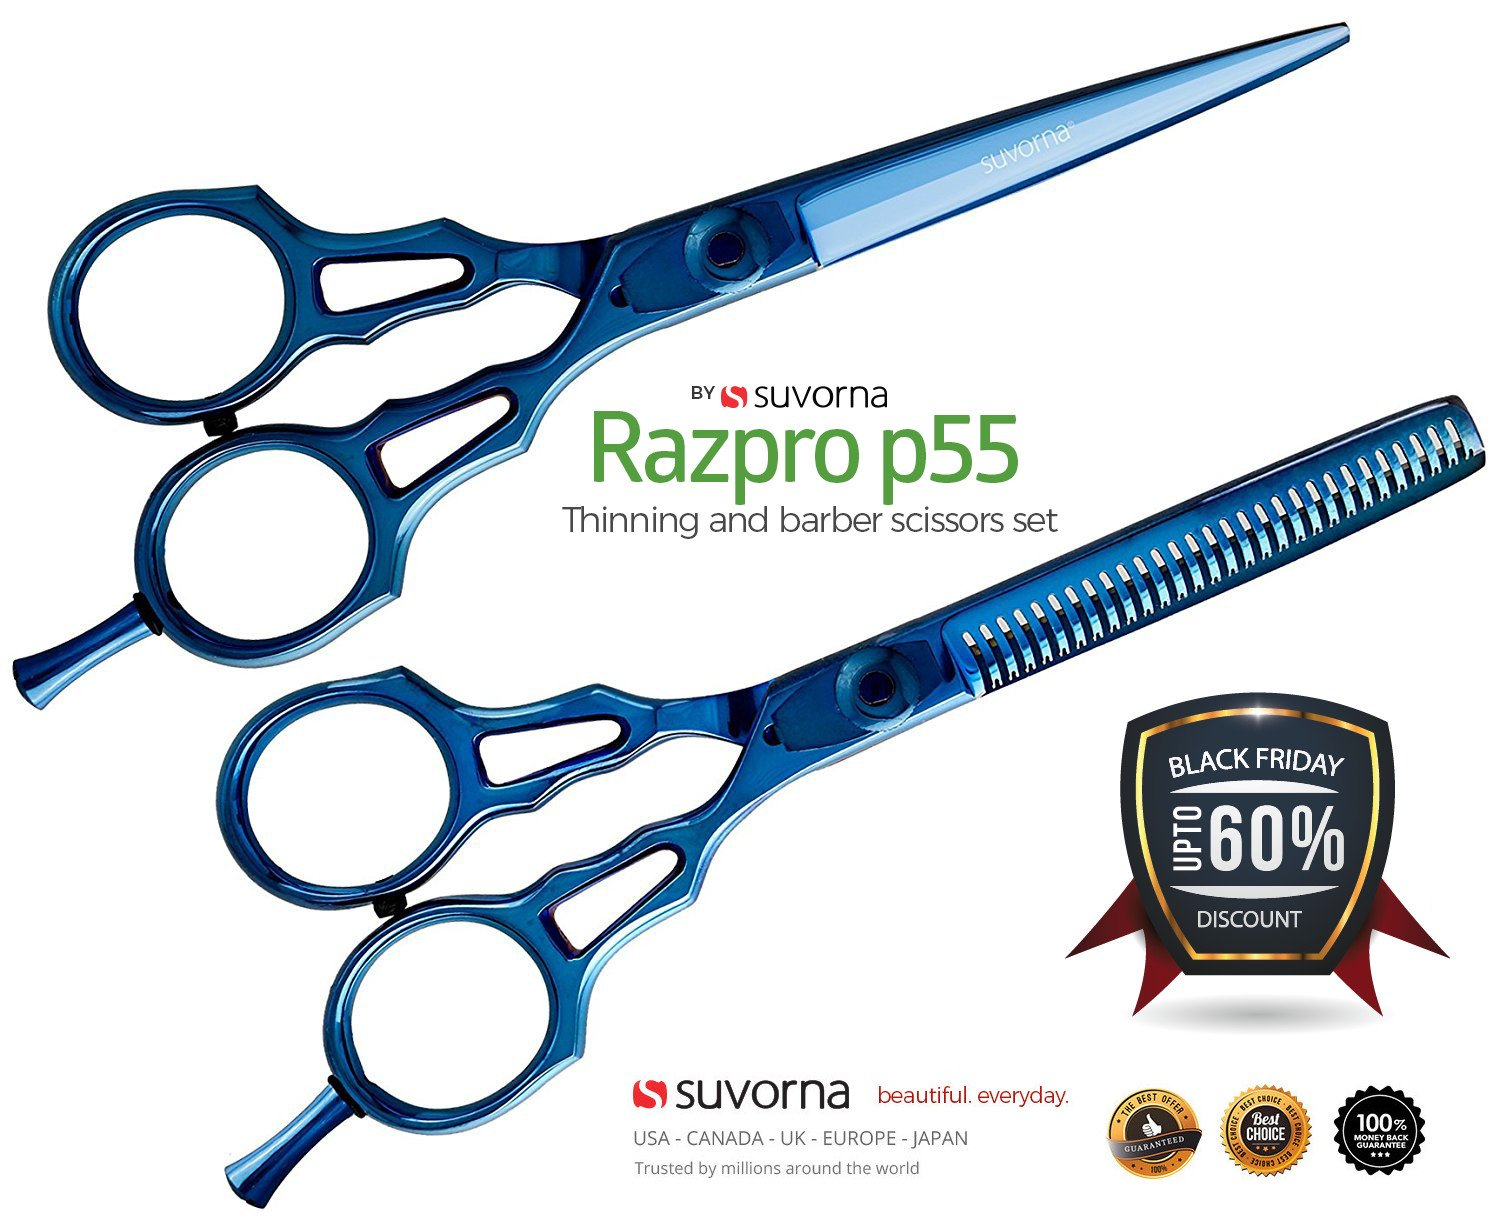 Suvorna Professional Barber Blue Titanium Razor Edge Hair Cutting and Texturizing Scissors Set Razpro P55, Blue, 16 Ounce by Suvorna